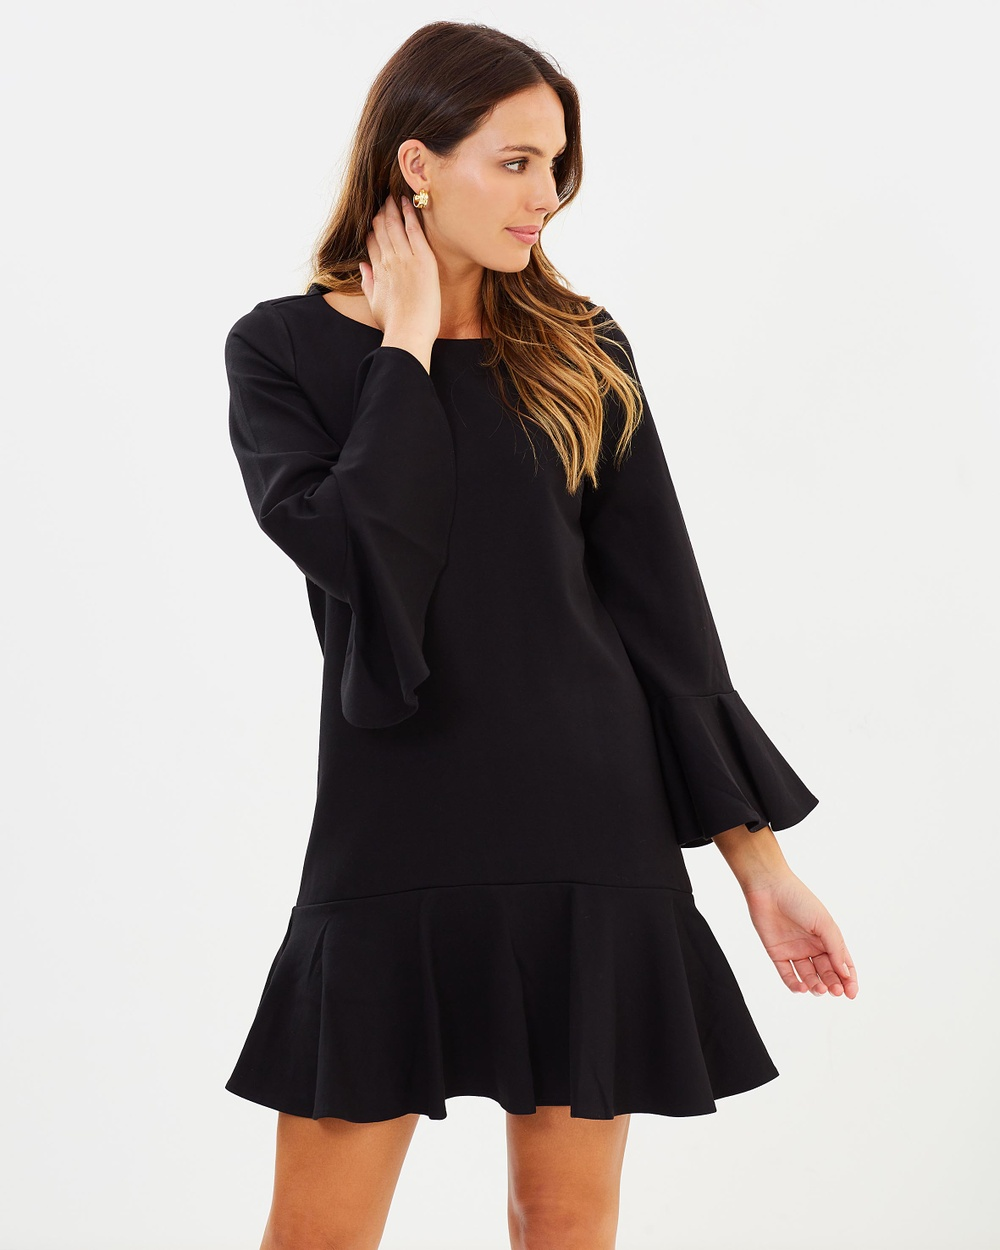 French Connection Matuku Lulu Ponte Jersey Dress Dresses Black Matuku Lulu Ponte Jersey Dress